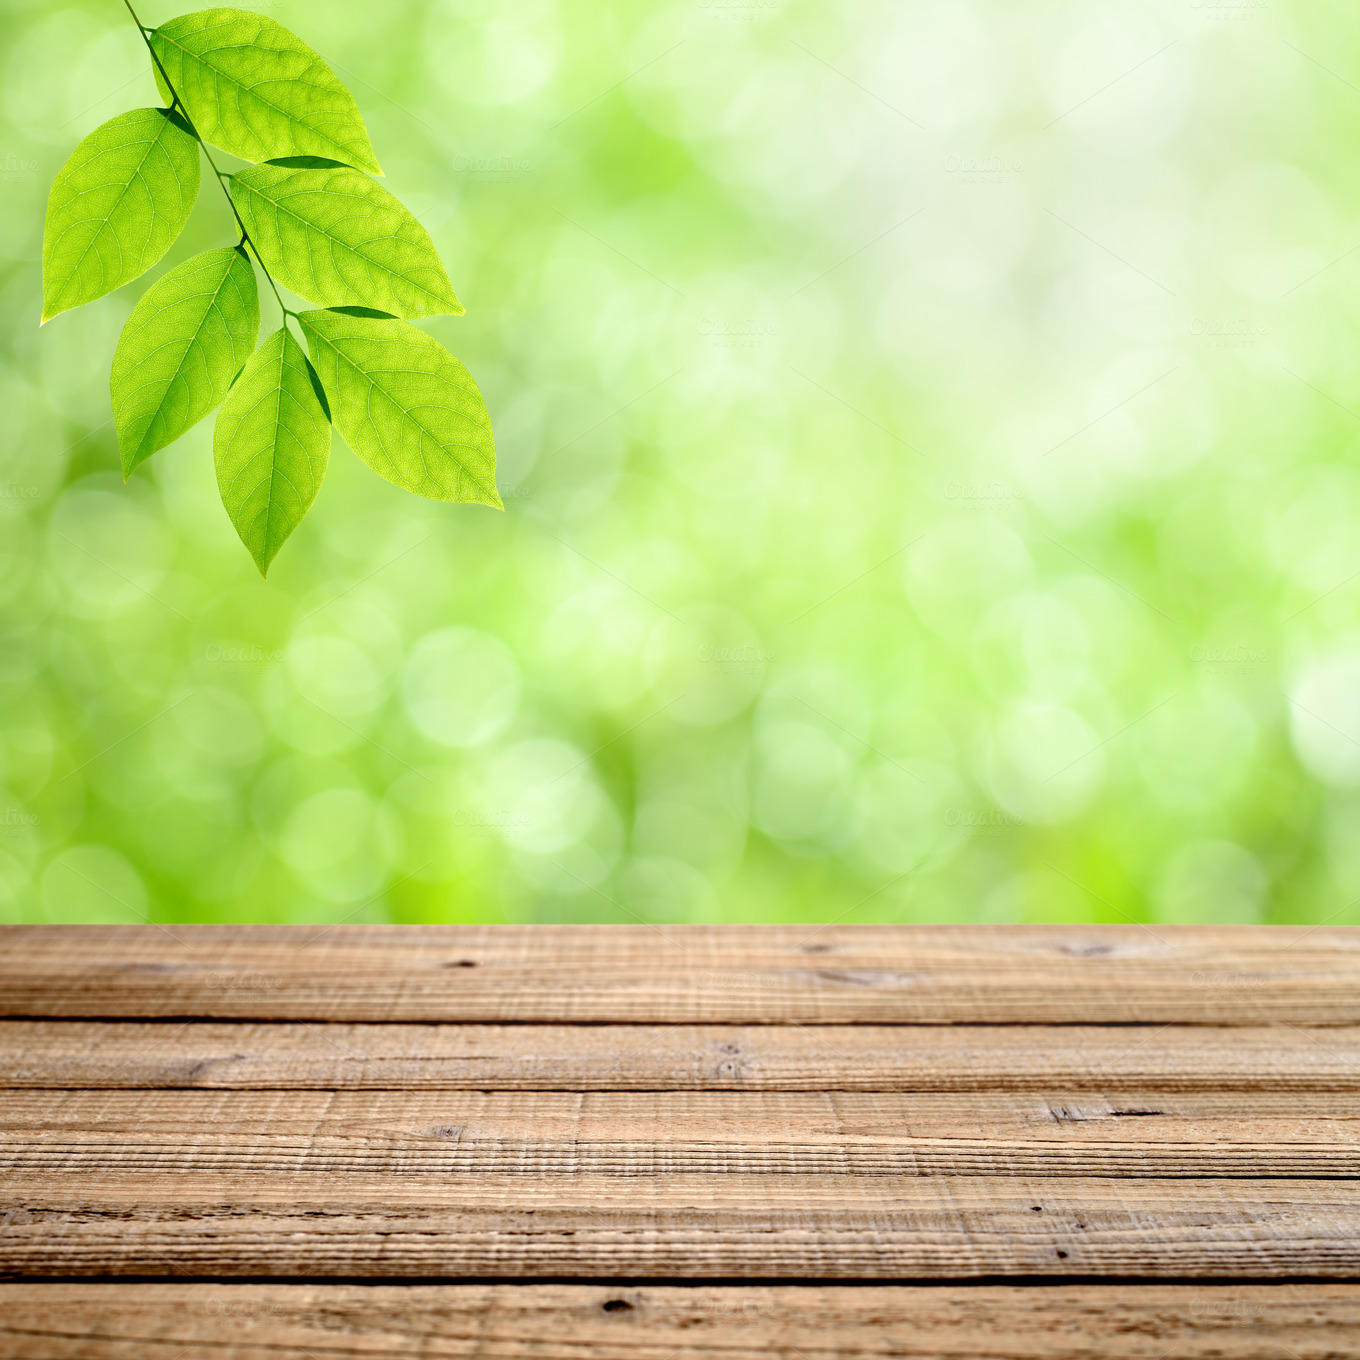 Table with green nature background  Nature Photos on